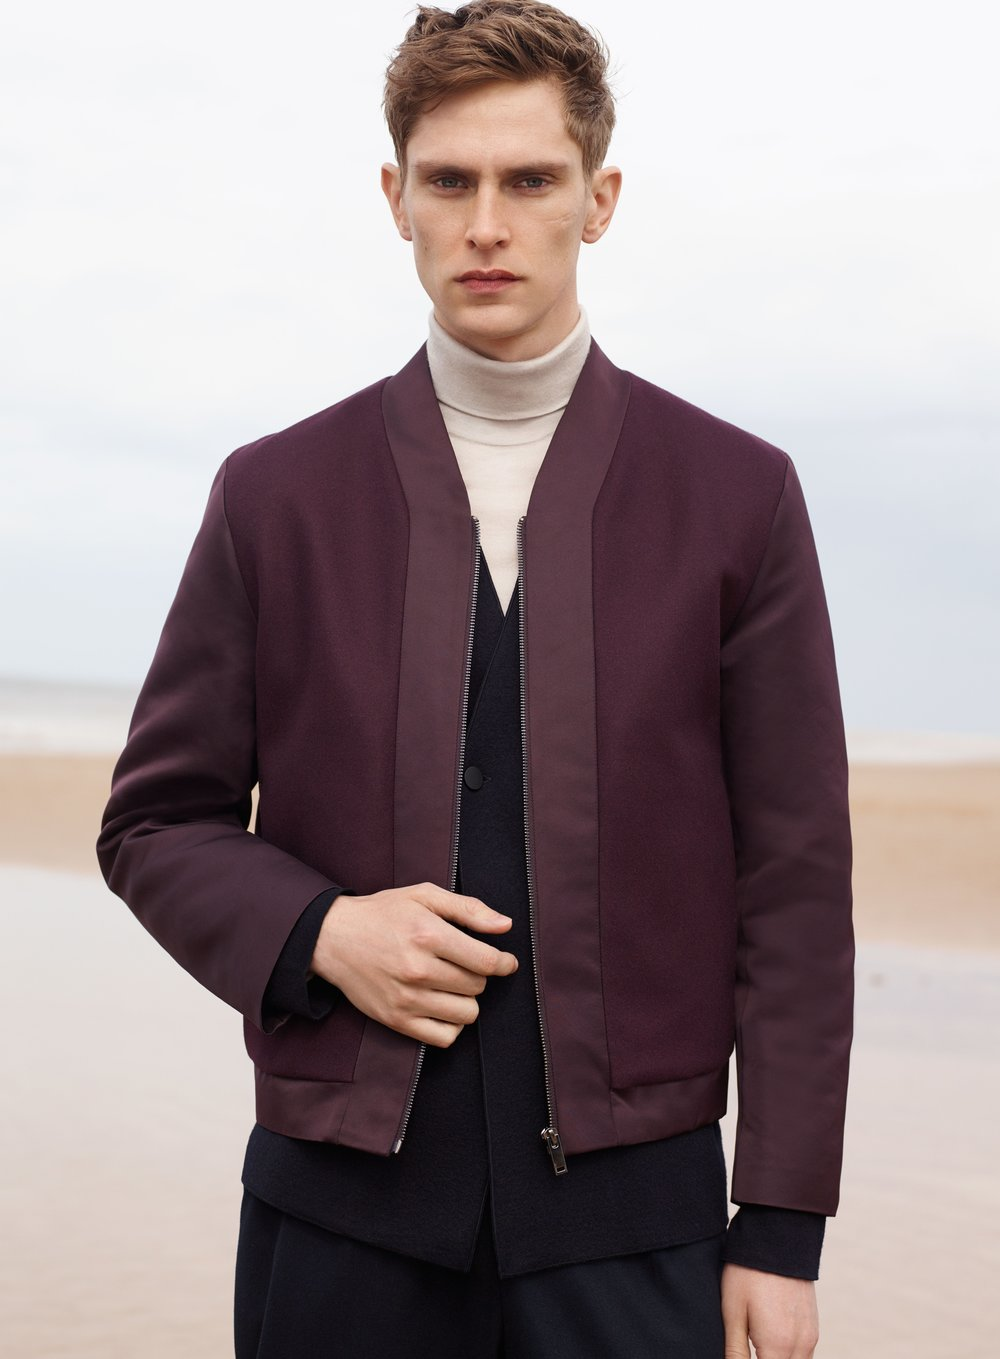 Double-breasted wool cardigan , £89